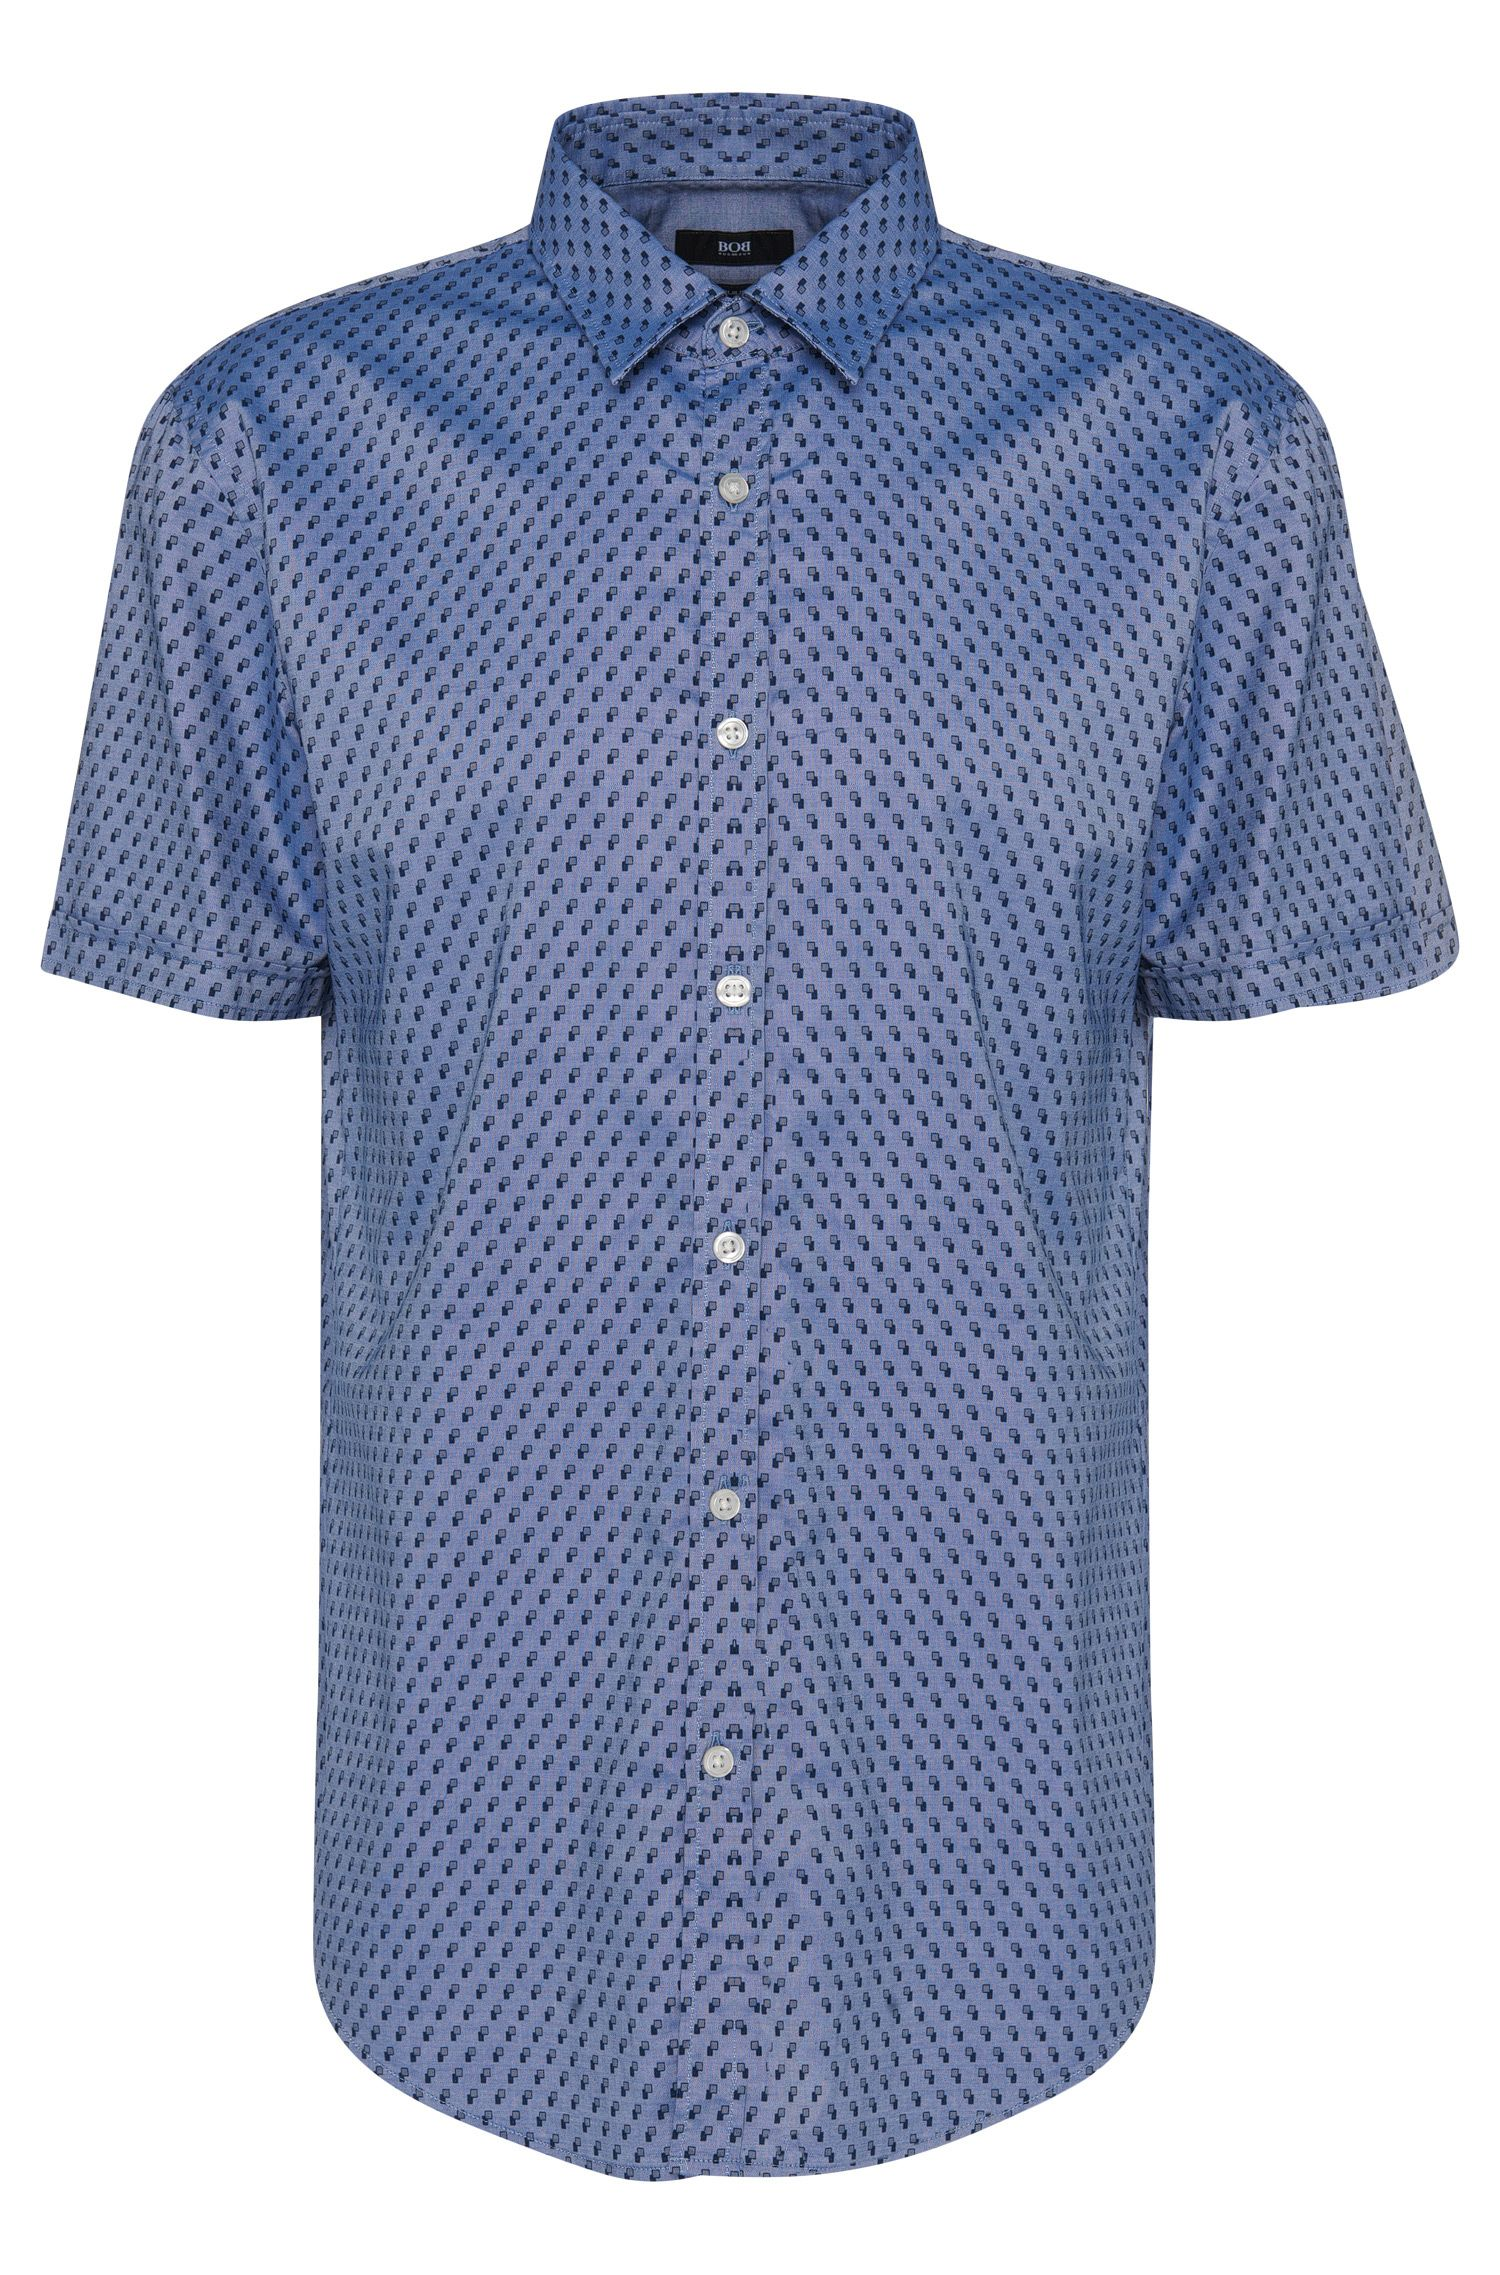 'Ronn' | Slim Fit, Cotton Button Down Shirt